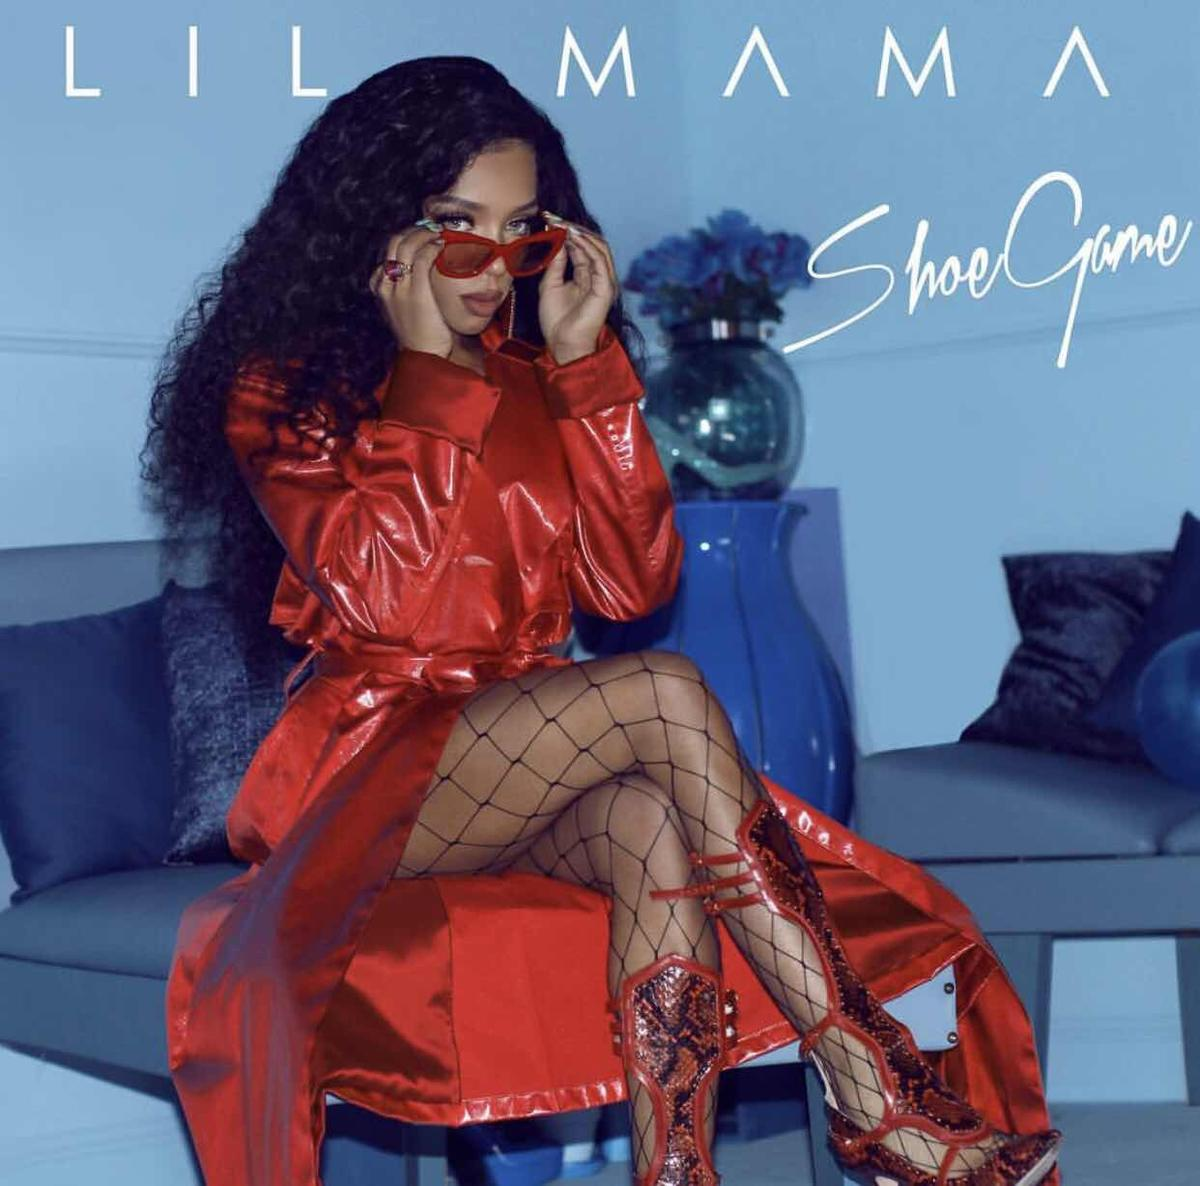 """Lil Mama – """"Shoe Game"""" Official Music Video"""